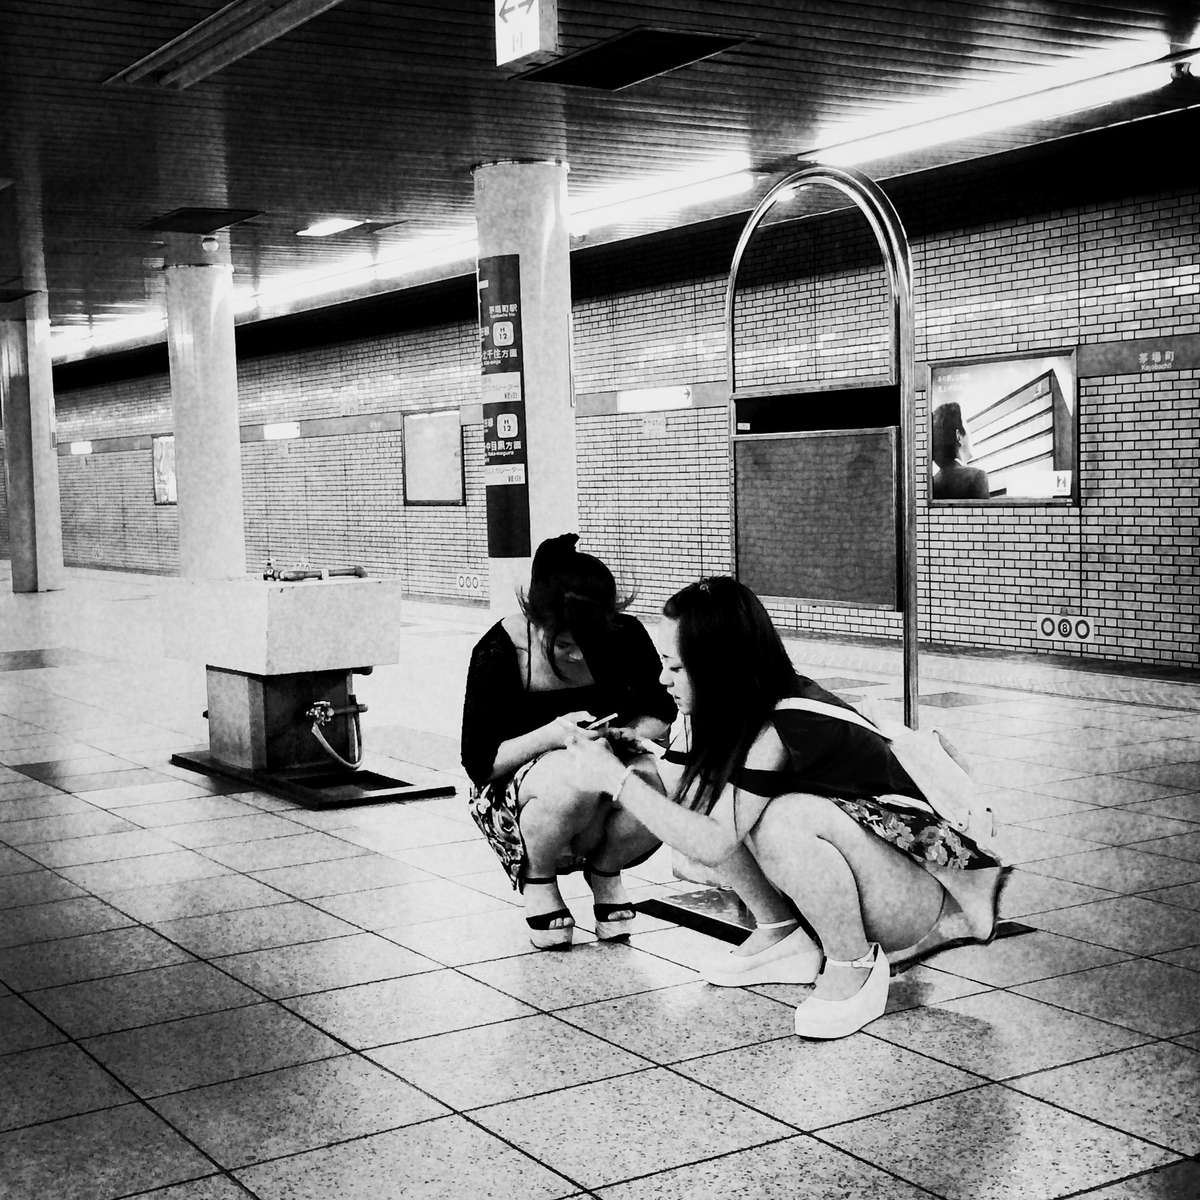 Women at Tokyo Metro at Deep Night